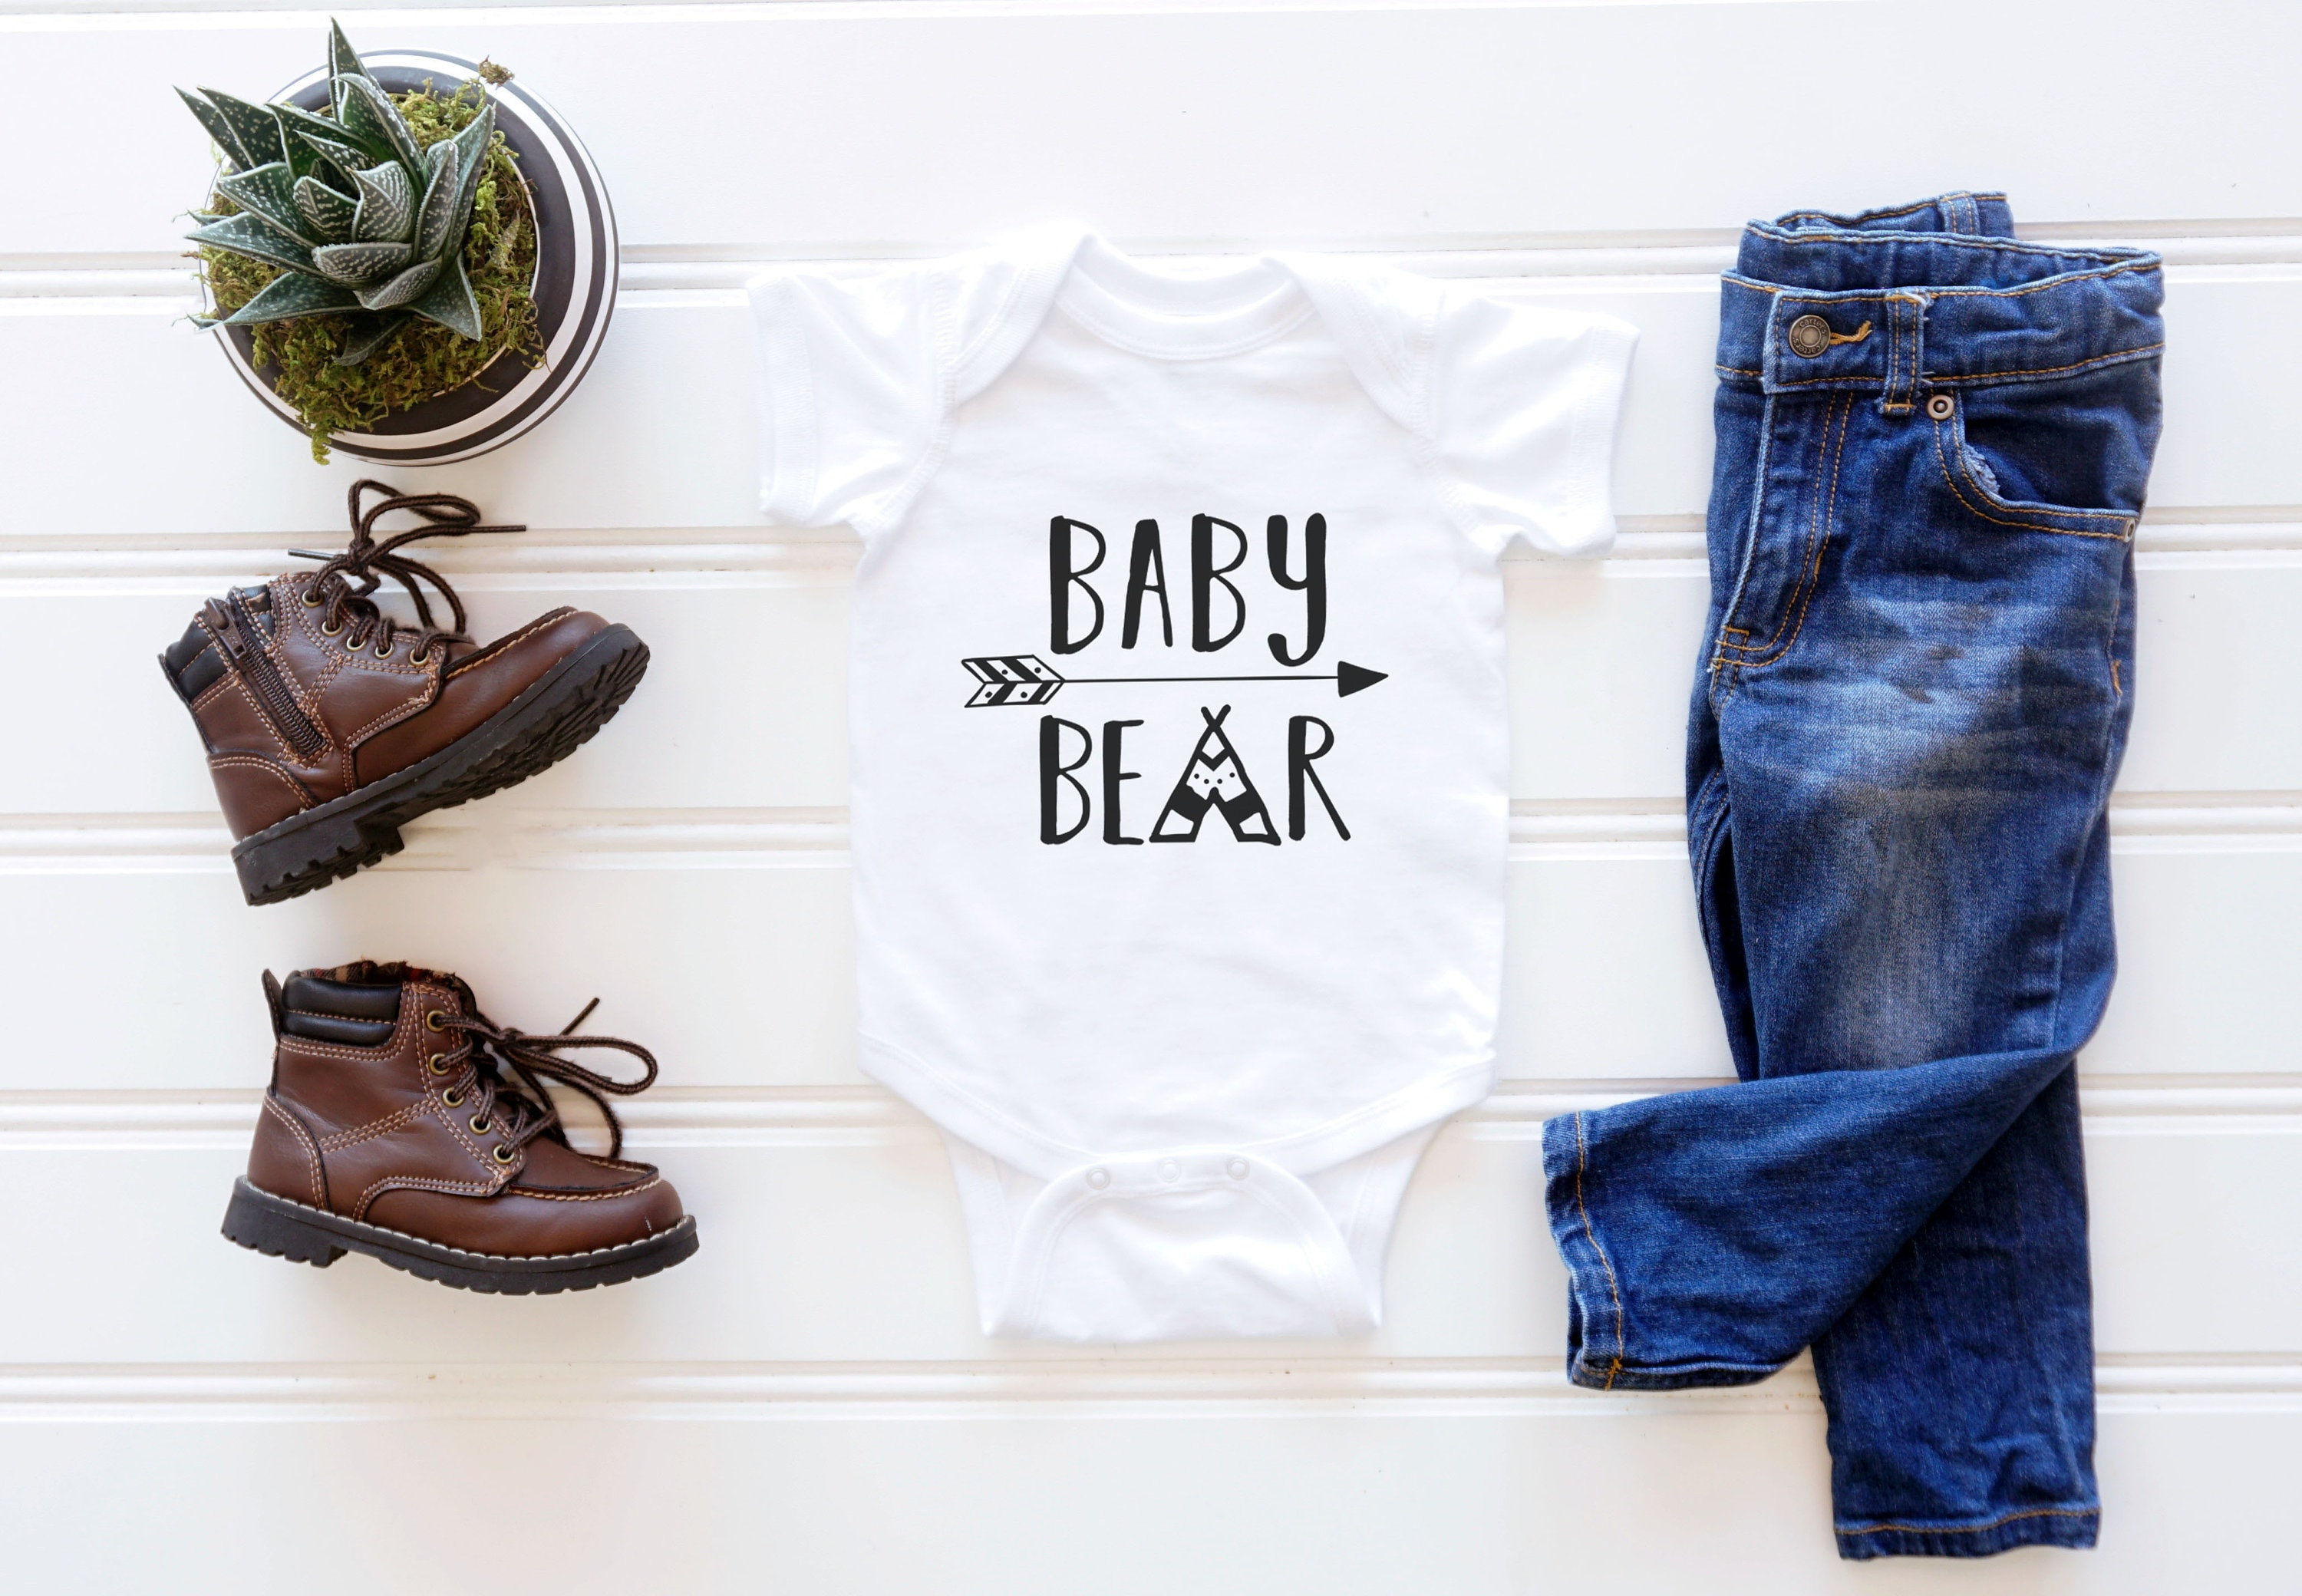 1ab1cc486 Baby Bear Onesie / Baby Clothes / Baby Gift / Baby Shower / Pregnancy  Announcement / Pregnancy Reveal. gallery photo gallery photo